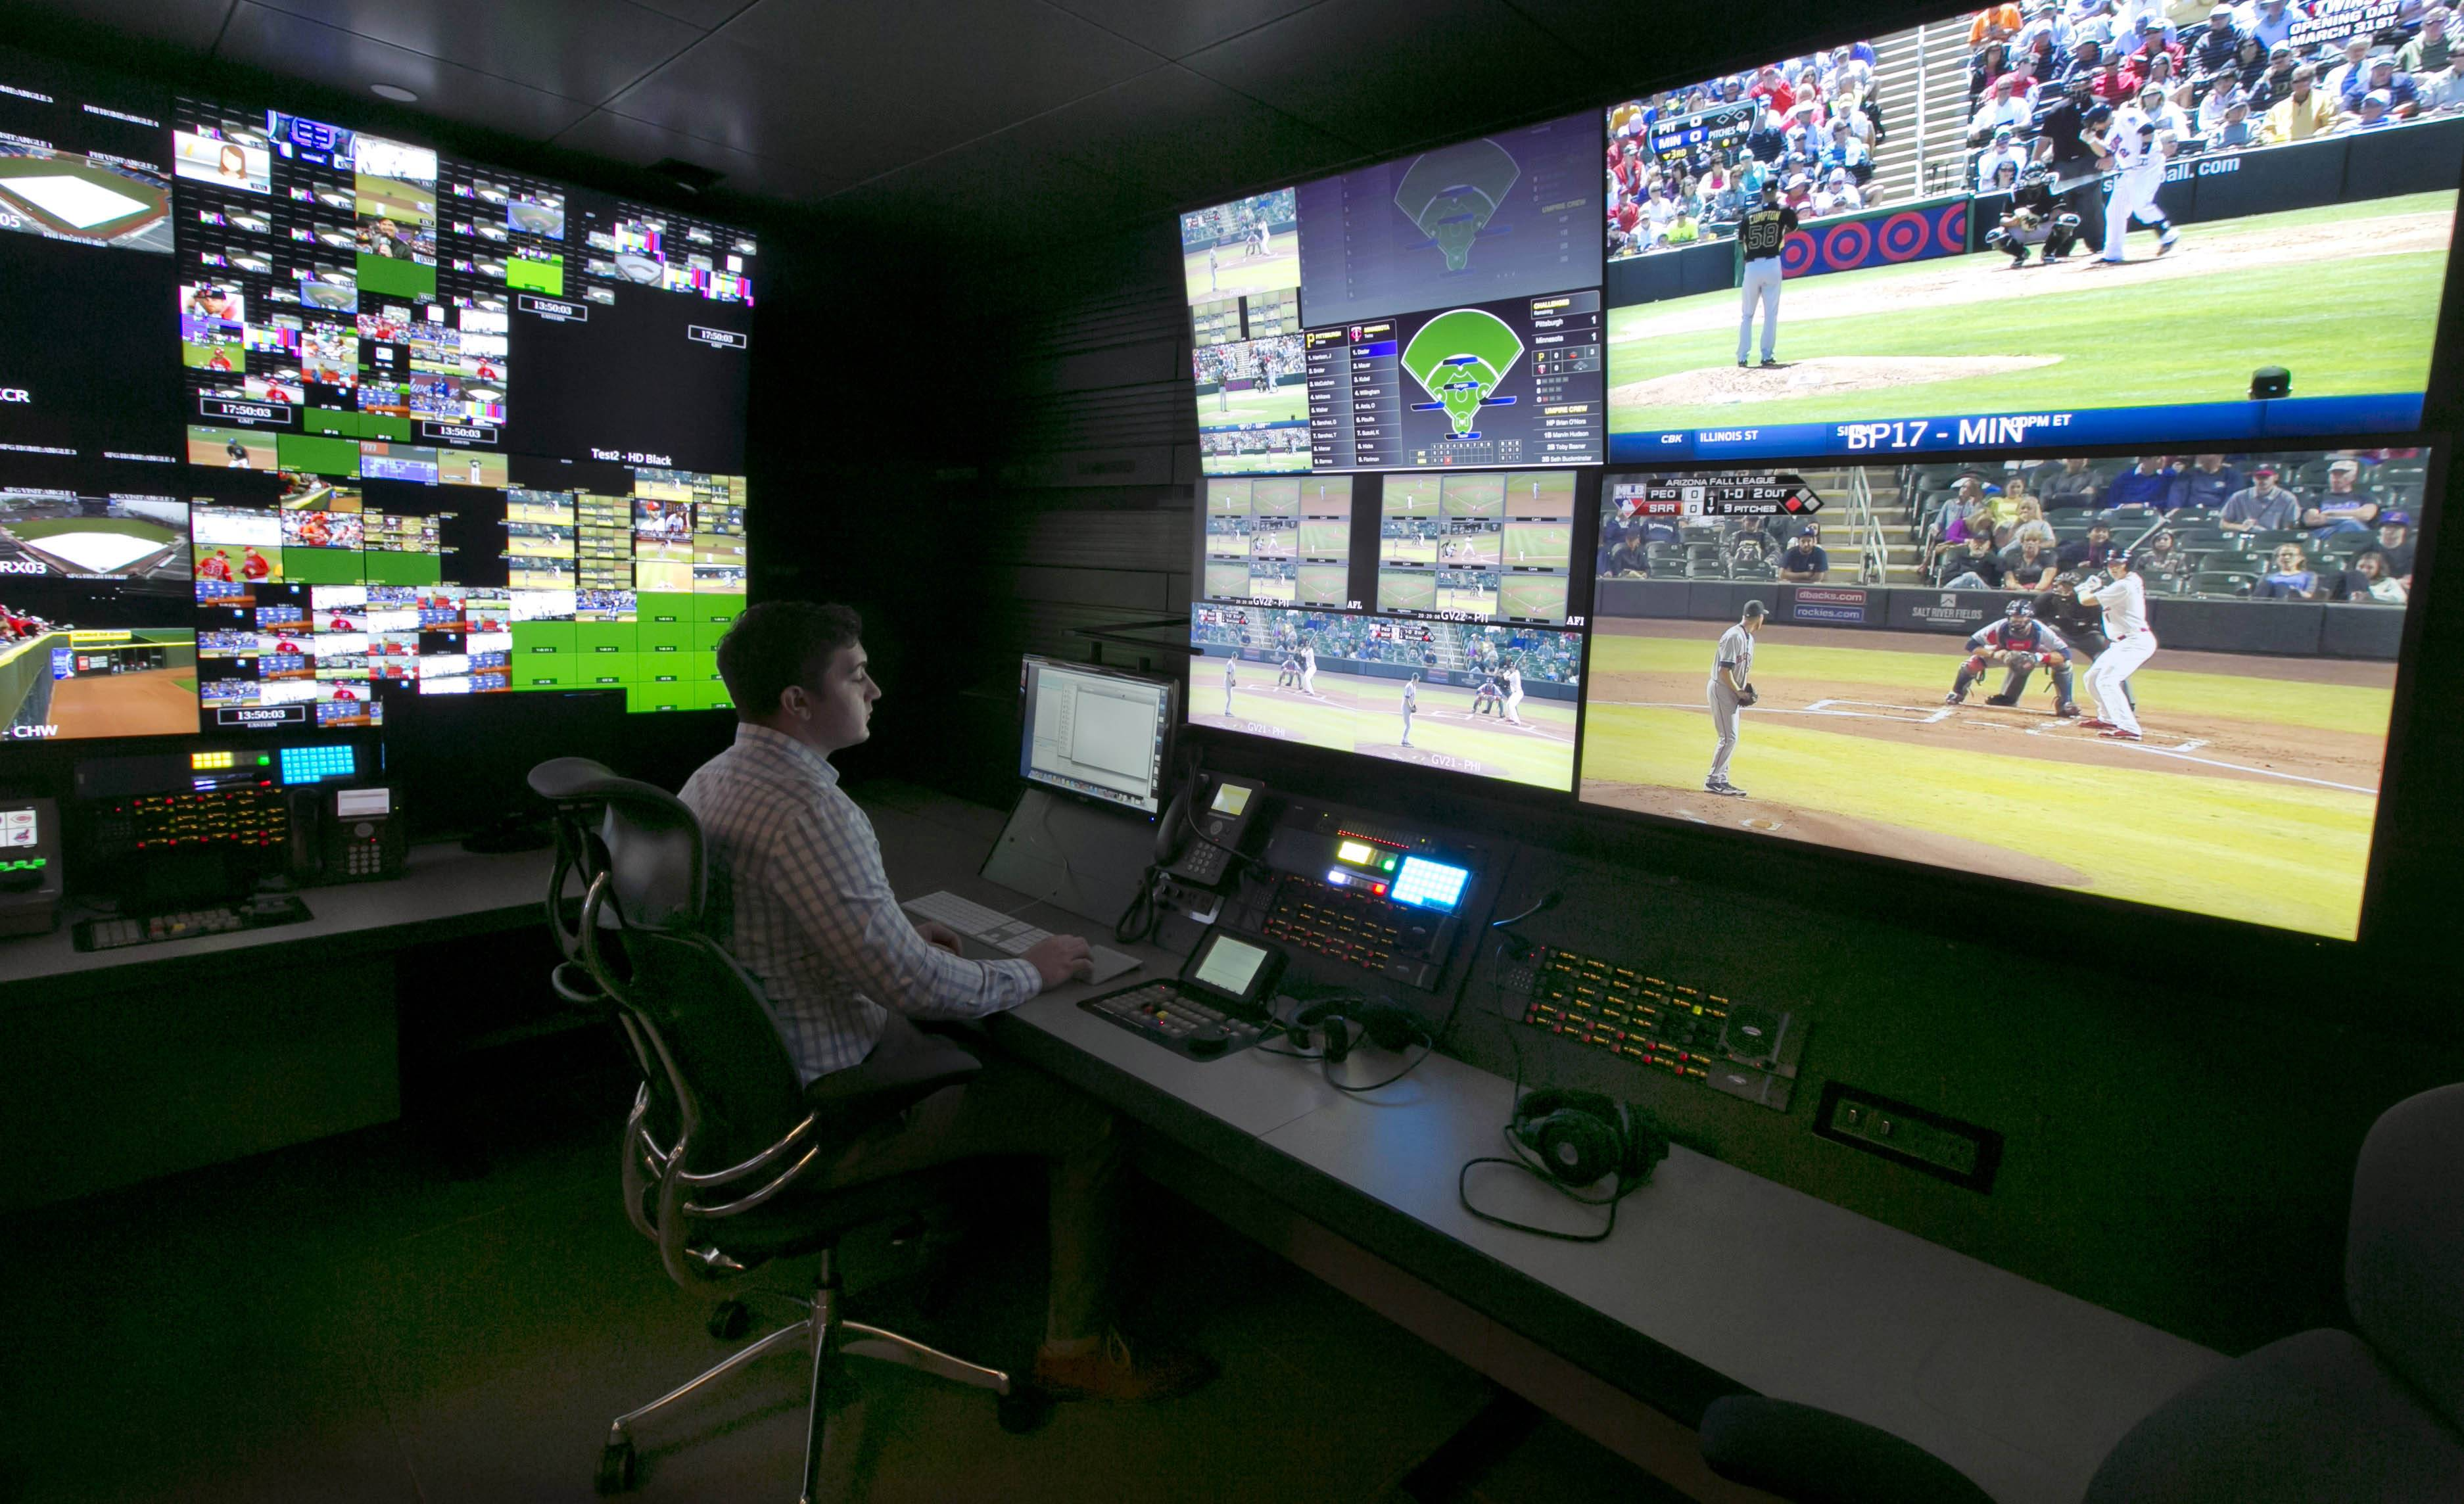 A technician works in front of a bank of television screens during a preview of Major League Baseball's Replay Operations Center, in New York, Wednesday, March 26, 2014.  Less than a week before most teams open, MLB is working on the unveiling of its new instant replay system, which it hopes will vastly reduce incorrect calls by umpires.